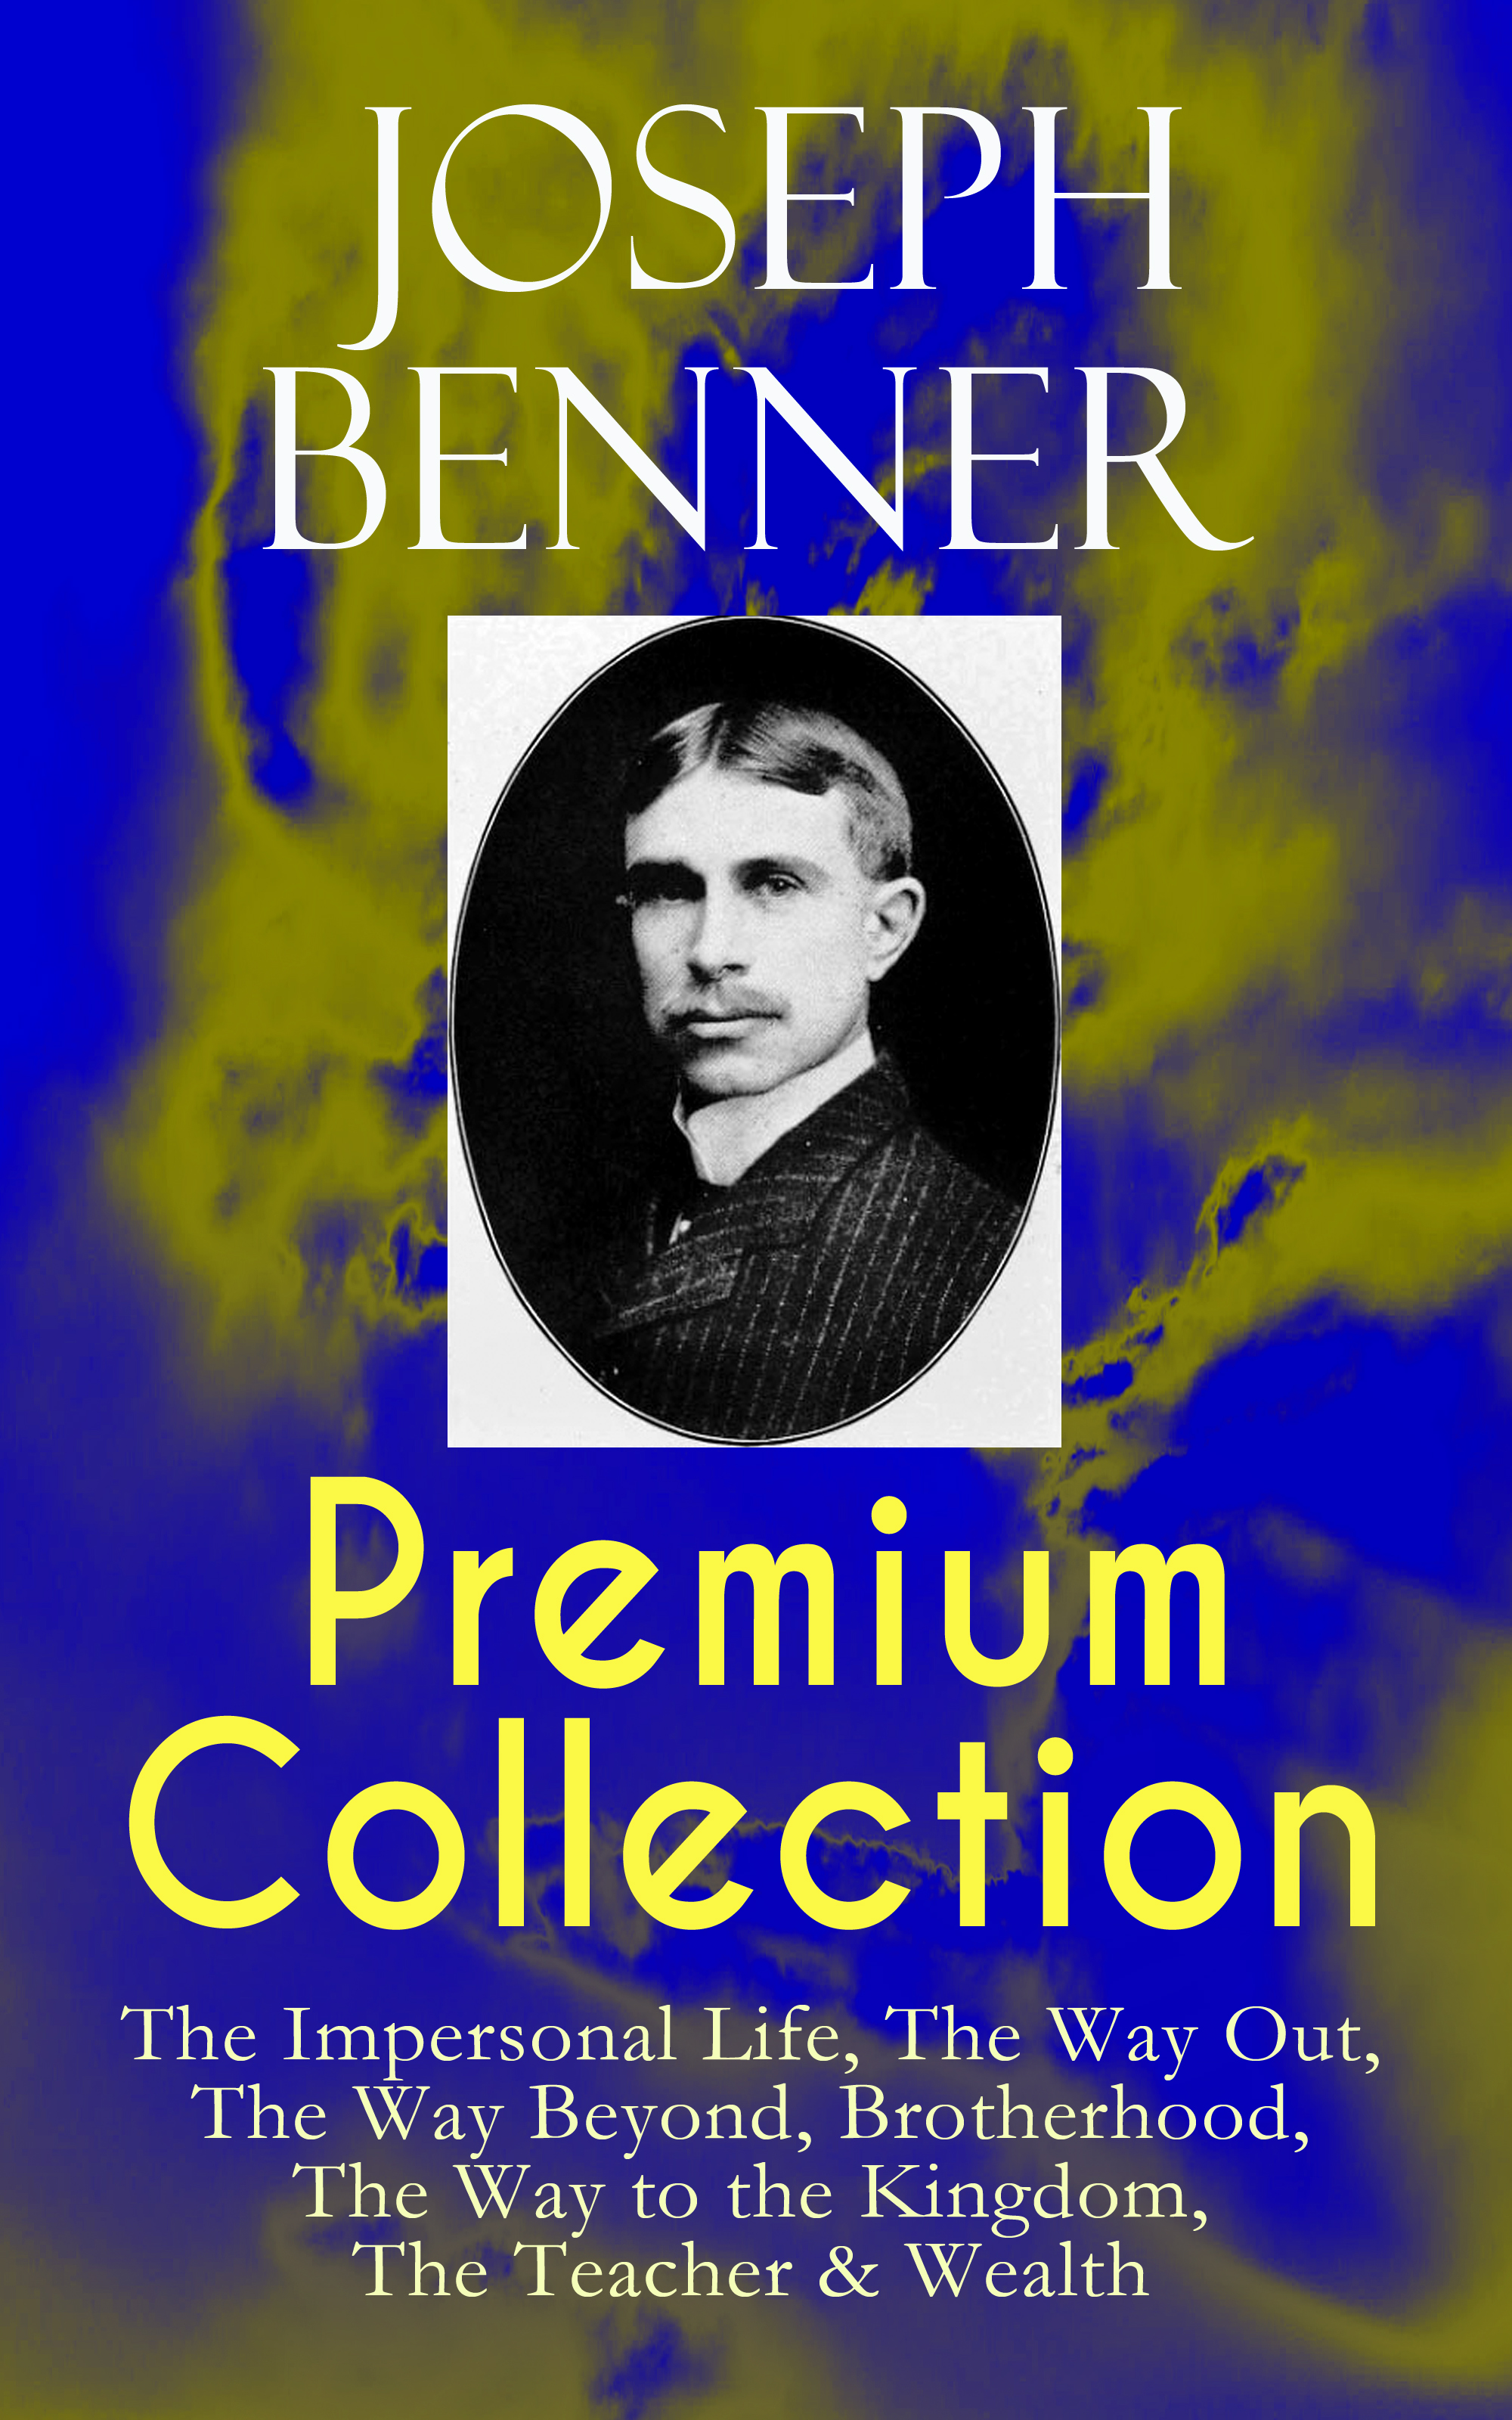 Joseph Benner JOSEPH BENNER Premium Collection: The Impersonal Life, The Way Out, The Way Beyond, Brotherhood, The Way to the Kingdom, The Teacher & Wealth max klim the epoch of stalin joseph stalin the way to power